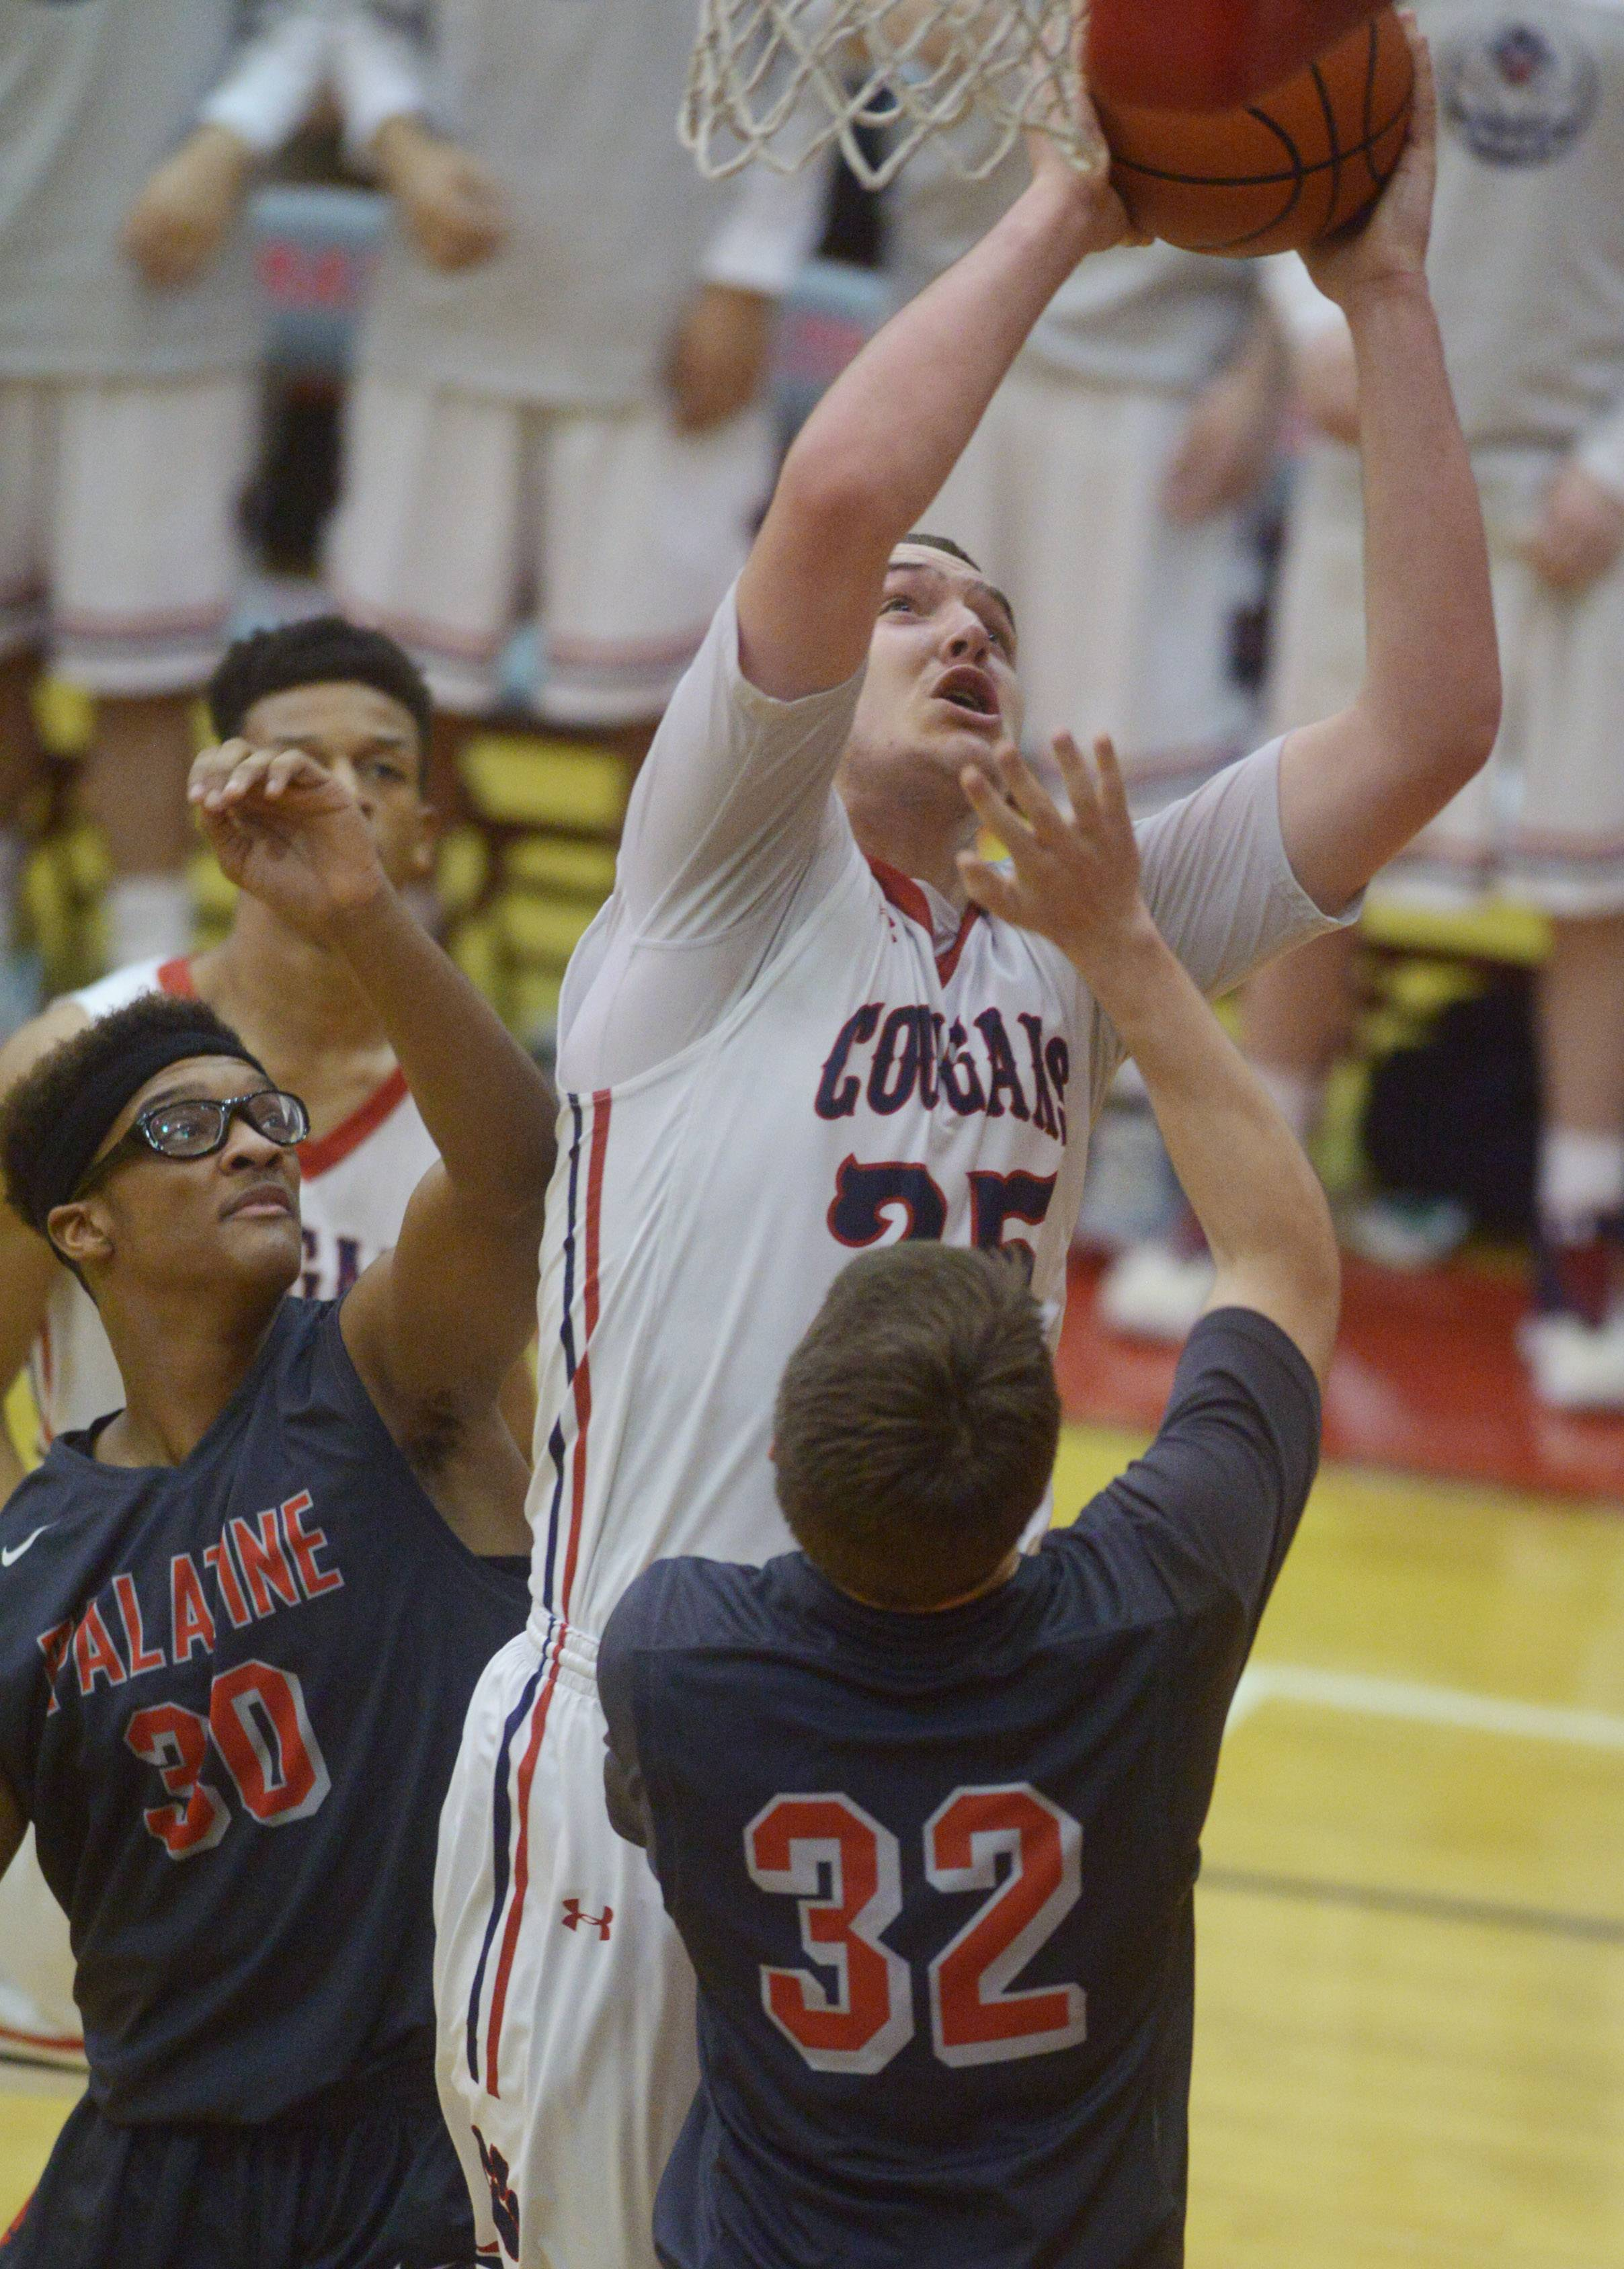 Conant's Ryan Davis elevates for a bucket during postseason play against Palatine last season. Davis, a 6-8 senior forward, has committed to Vermont.